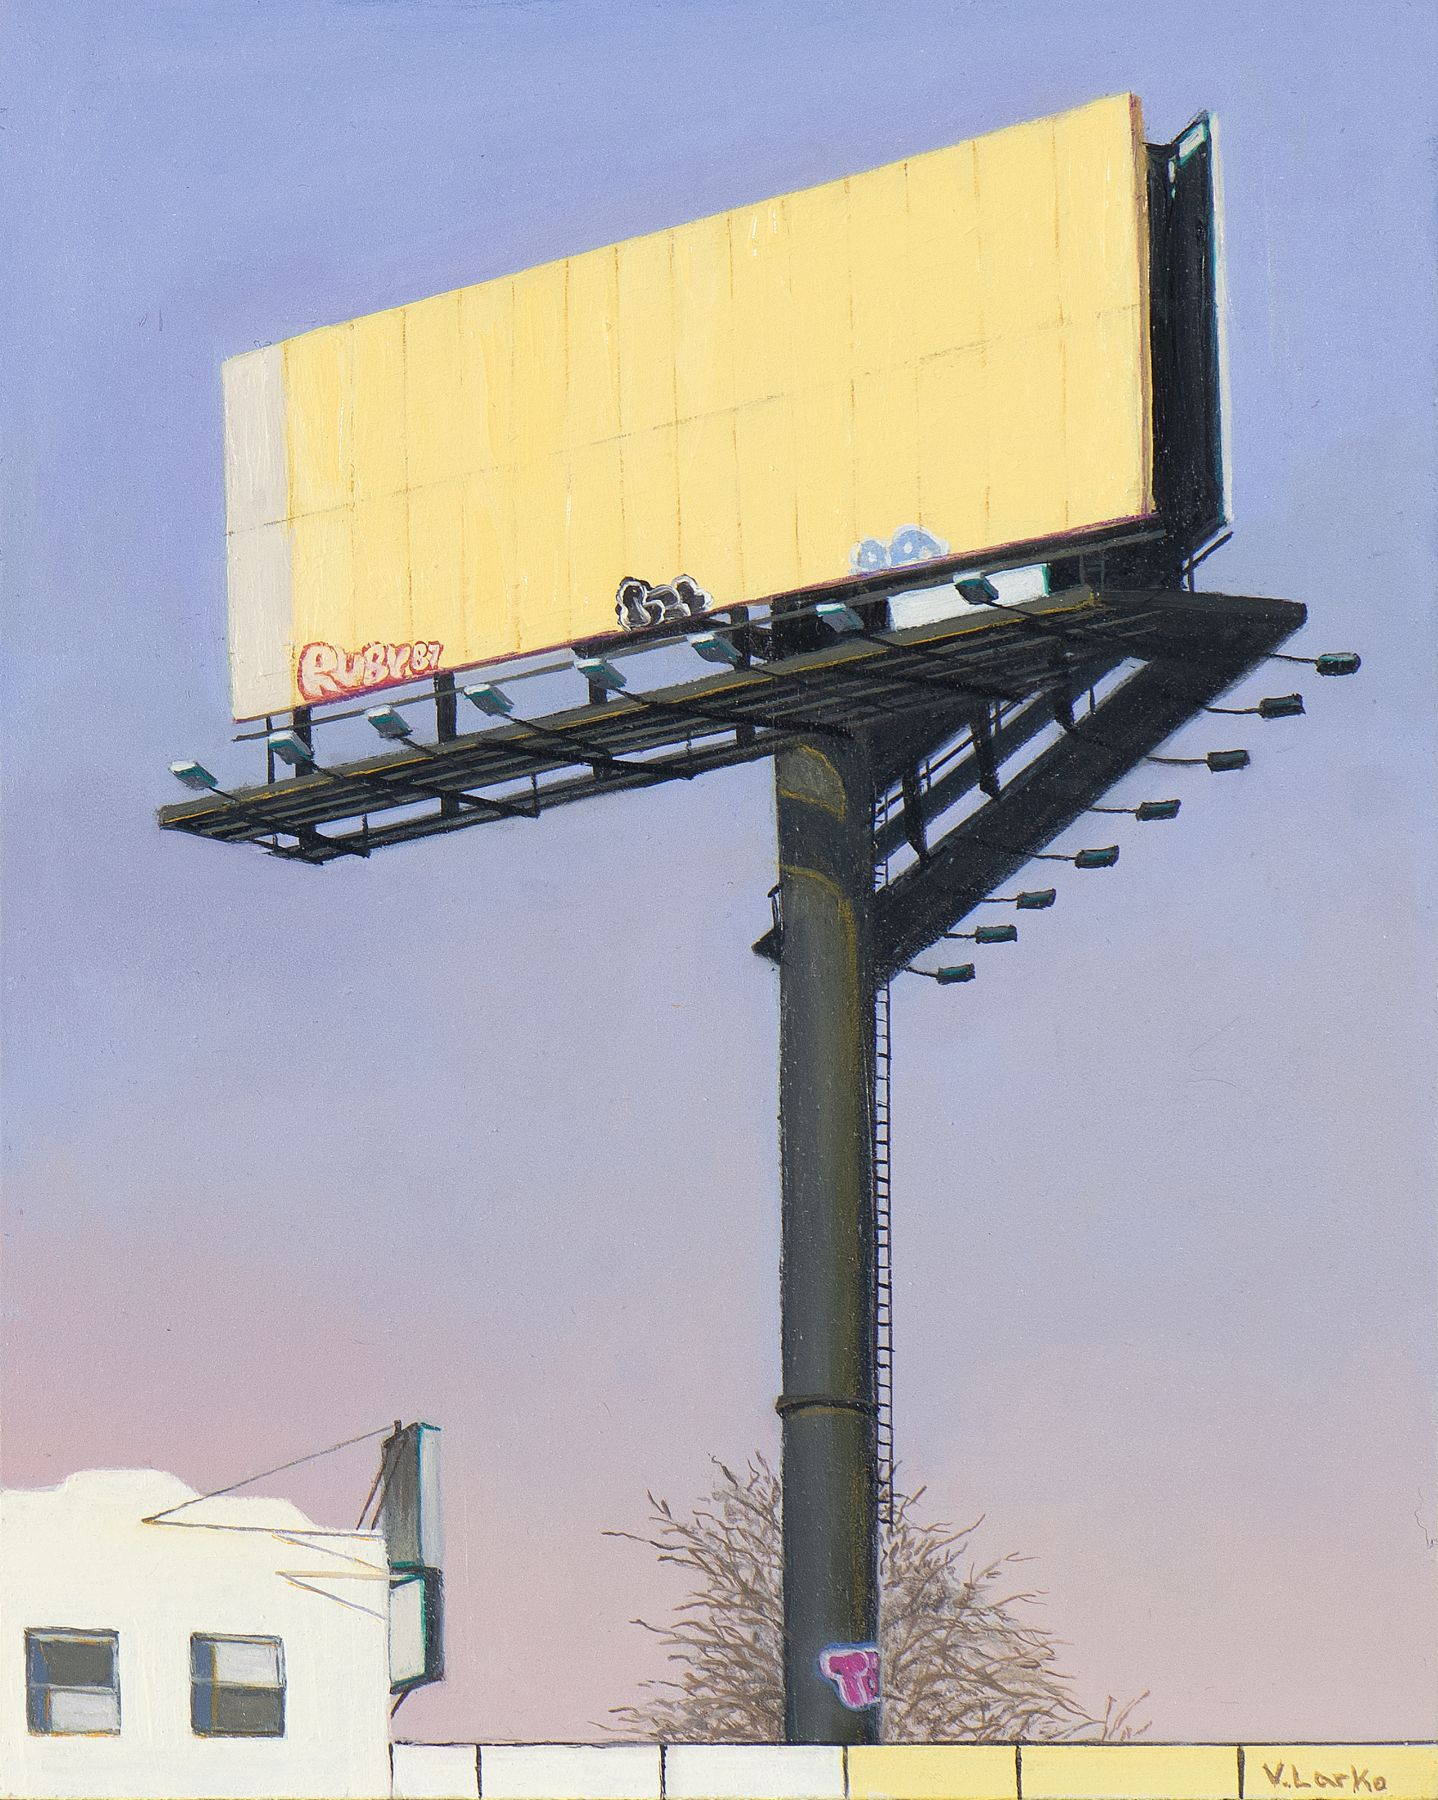 Valeri Larko painting titled Sign of the Times IX (Ruby87), 2019, oil on panel, 10 x 8 inches imagery urban landscape featuring blank yellow billboard with graffiti